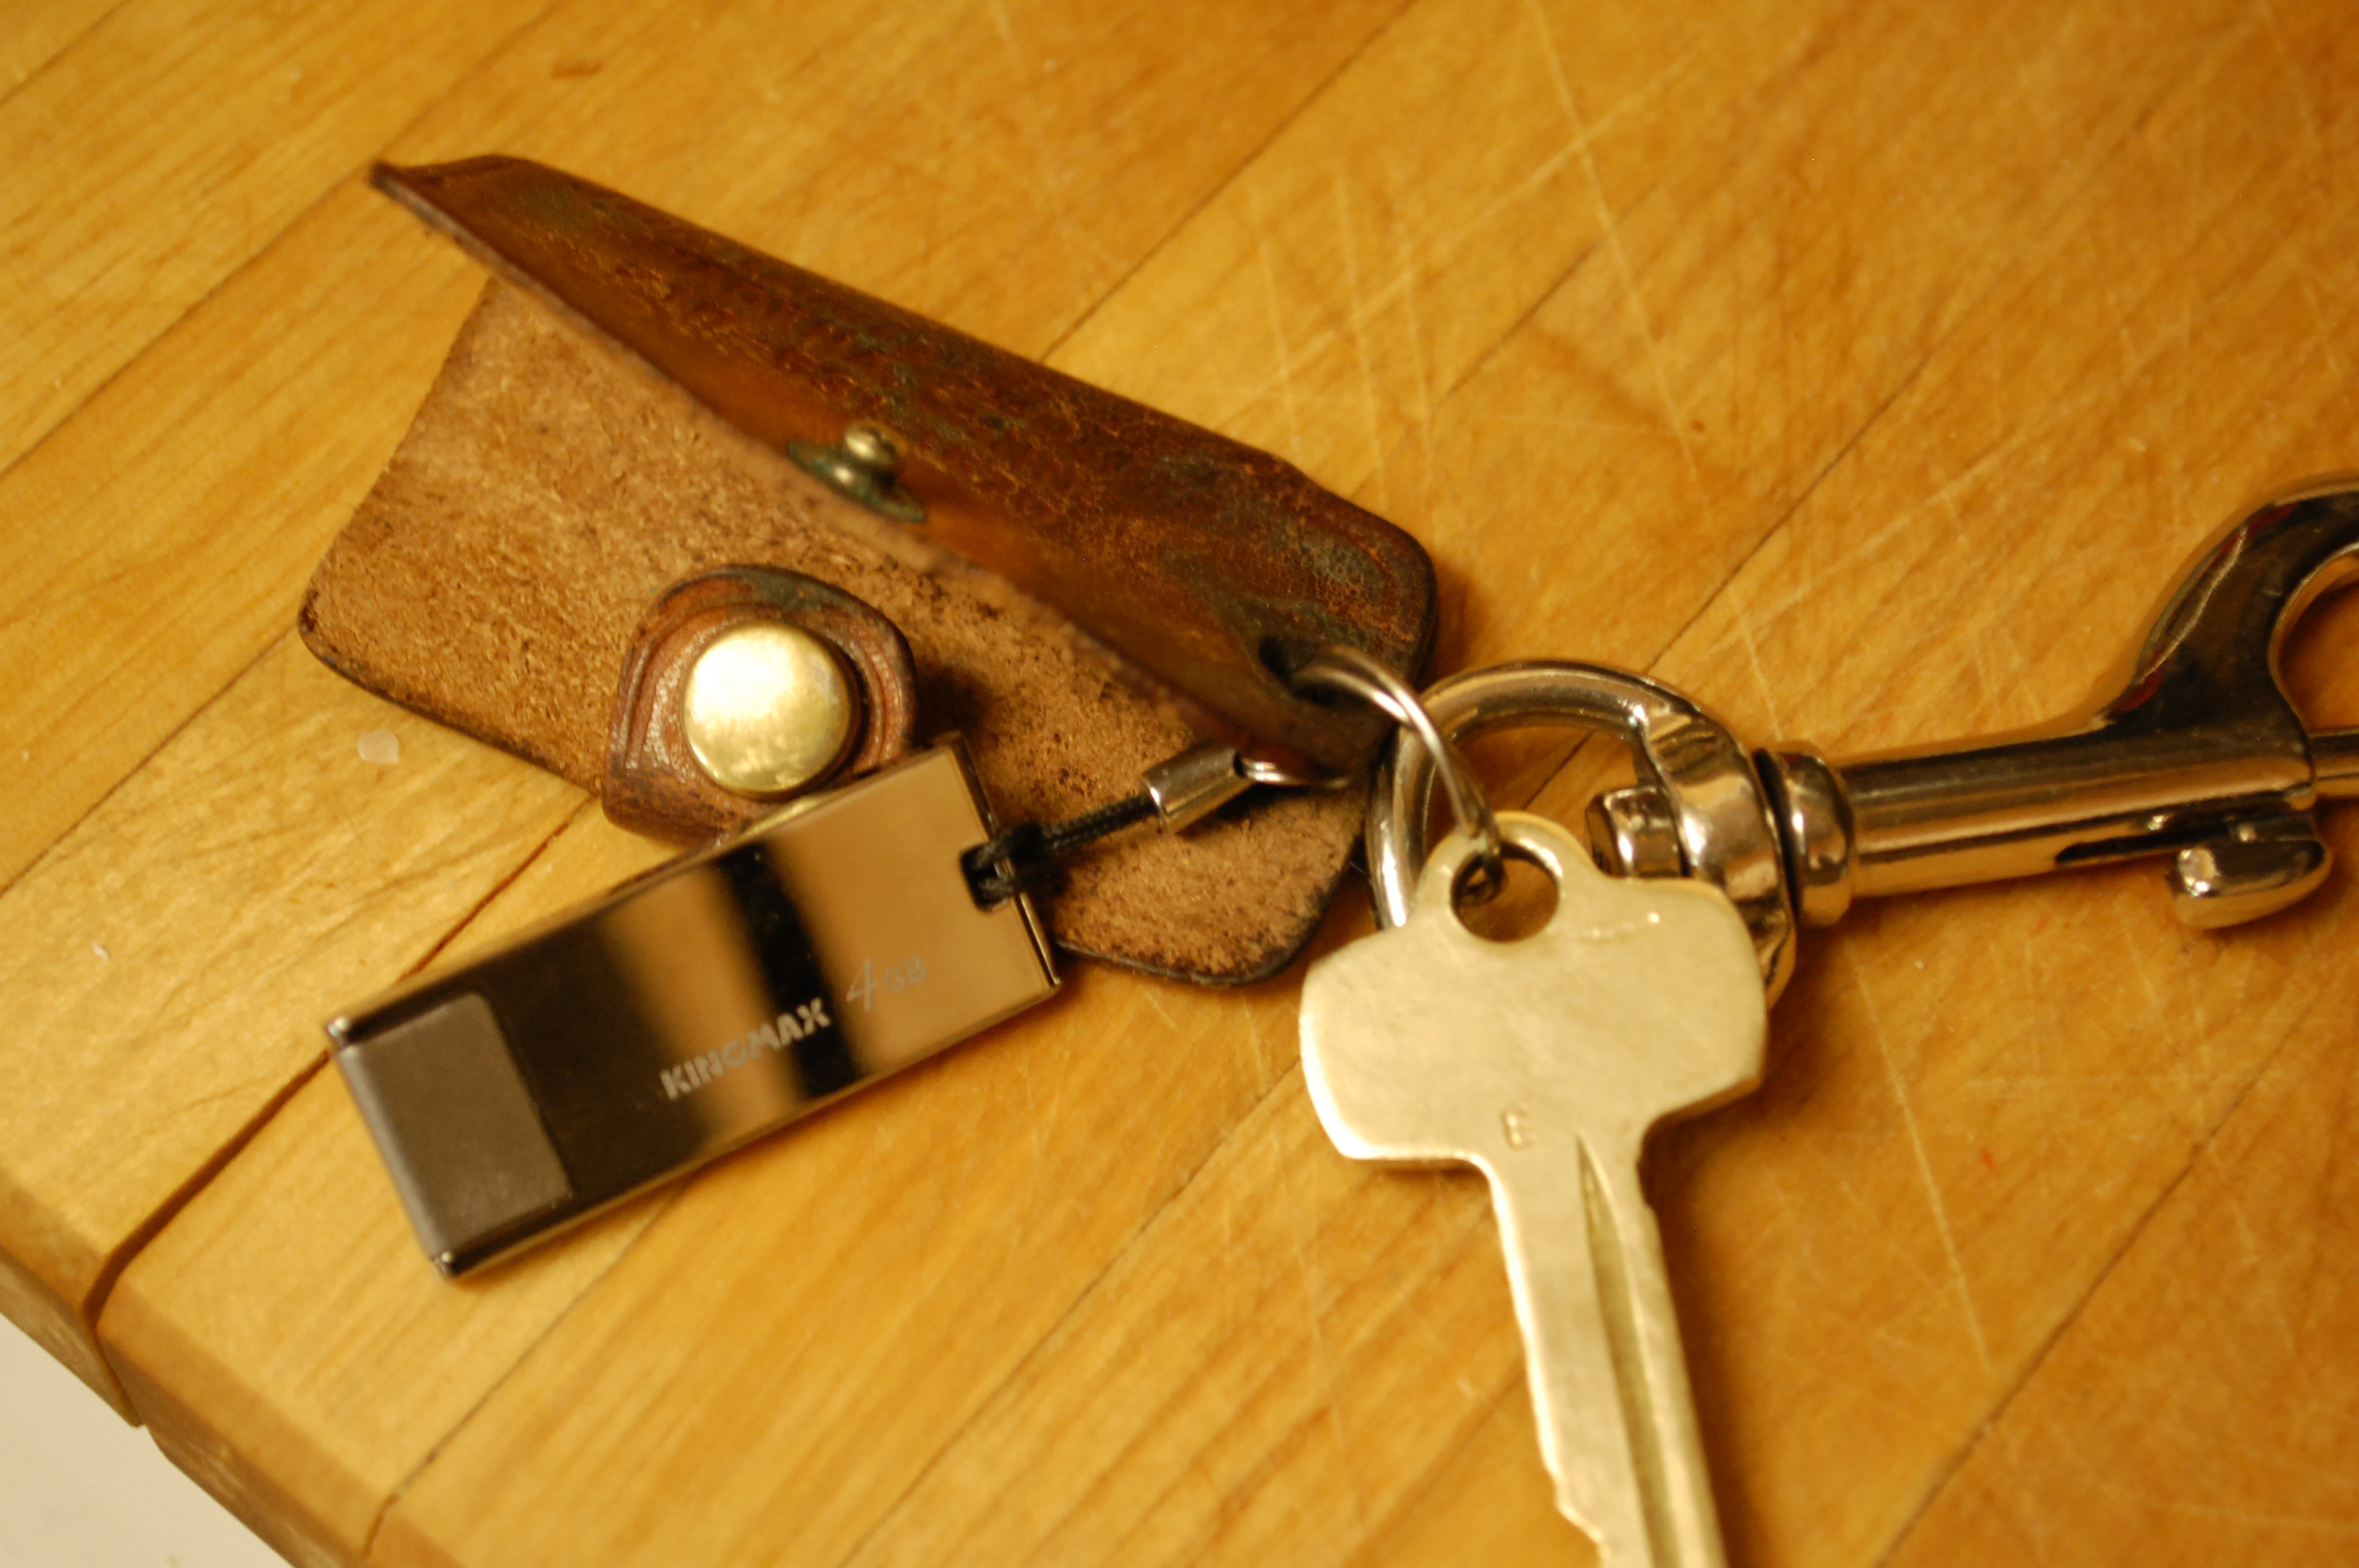 Picture of Leather Key Holder Flash Drive Case